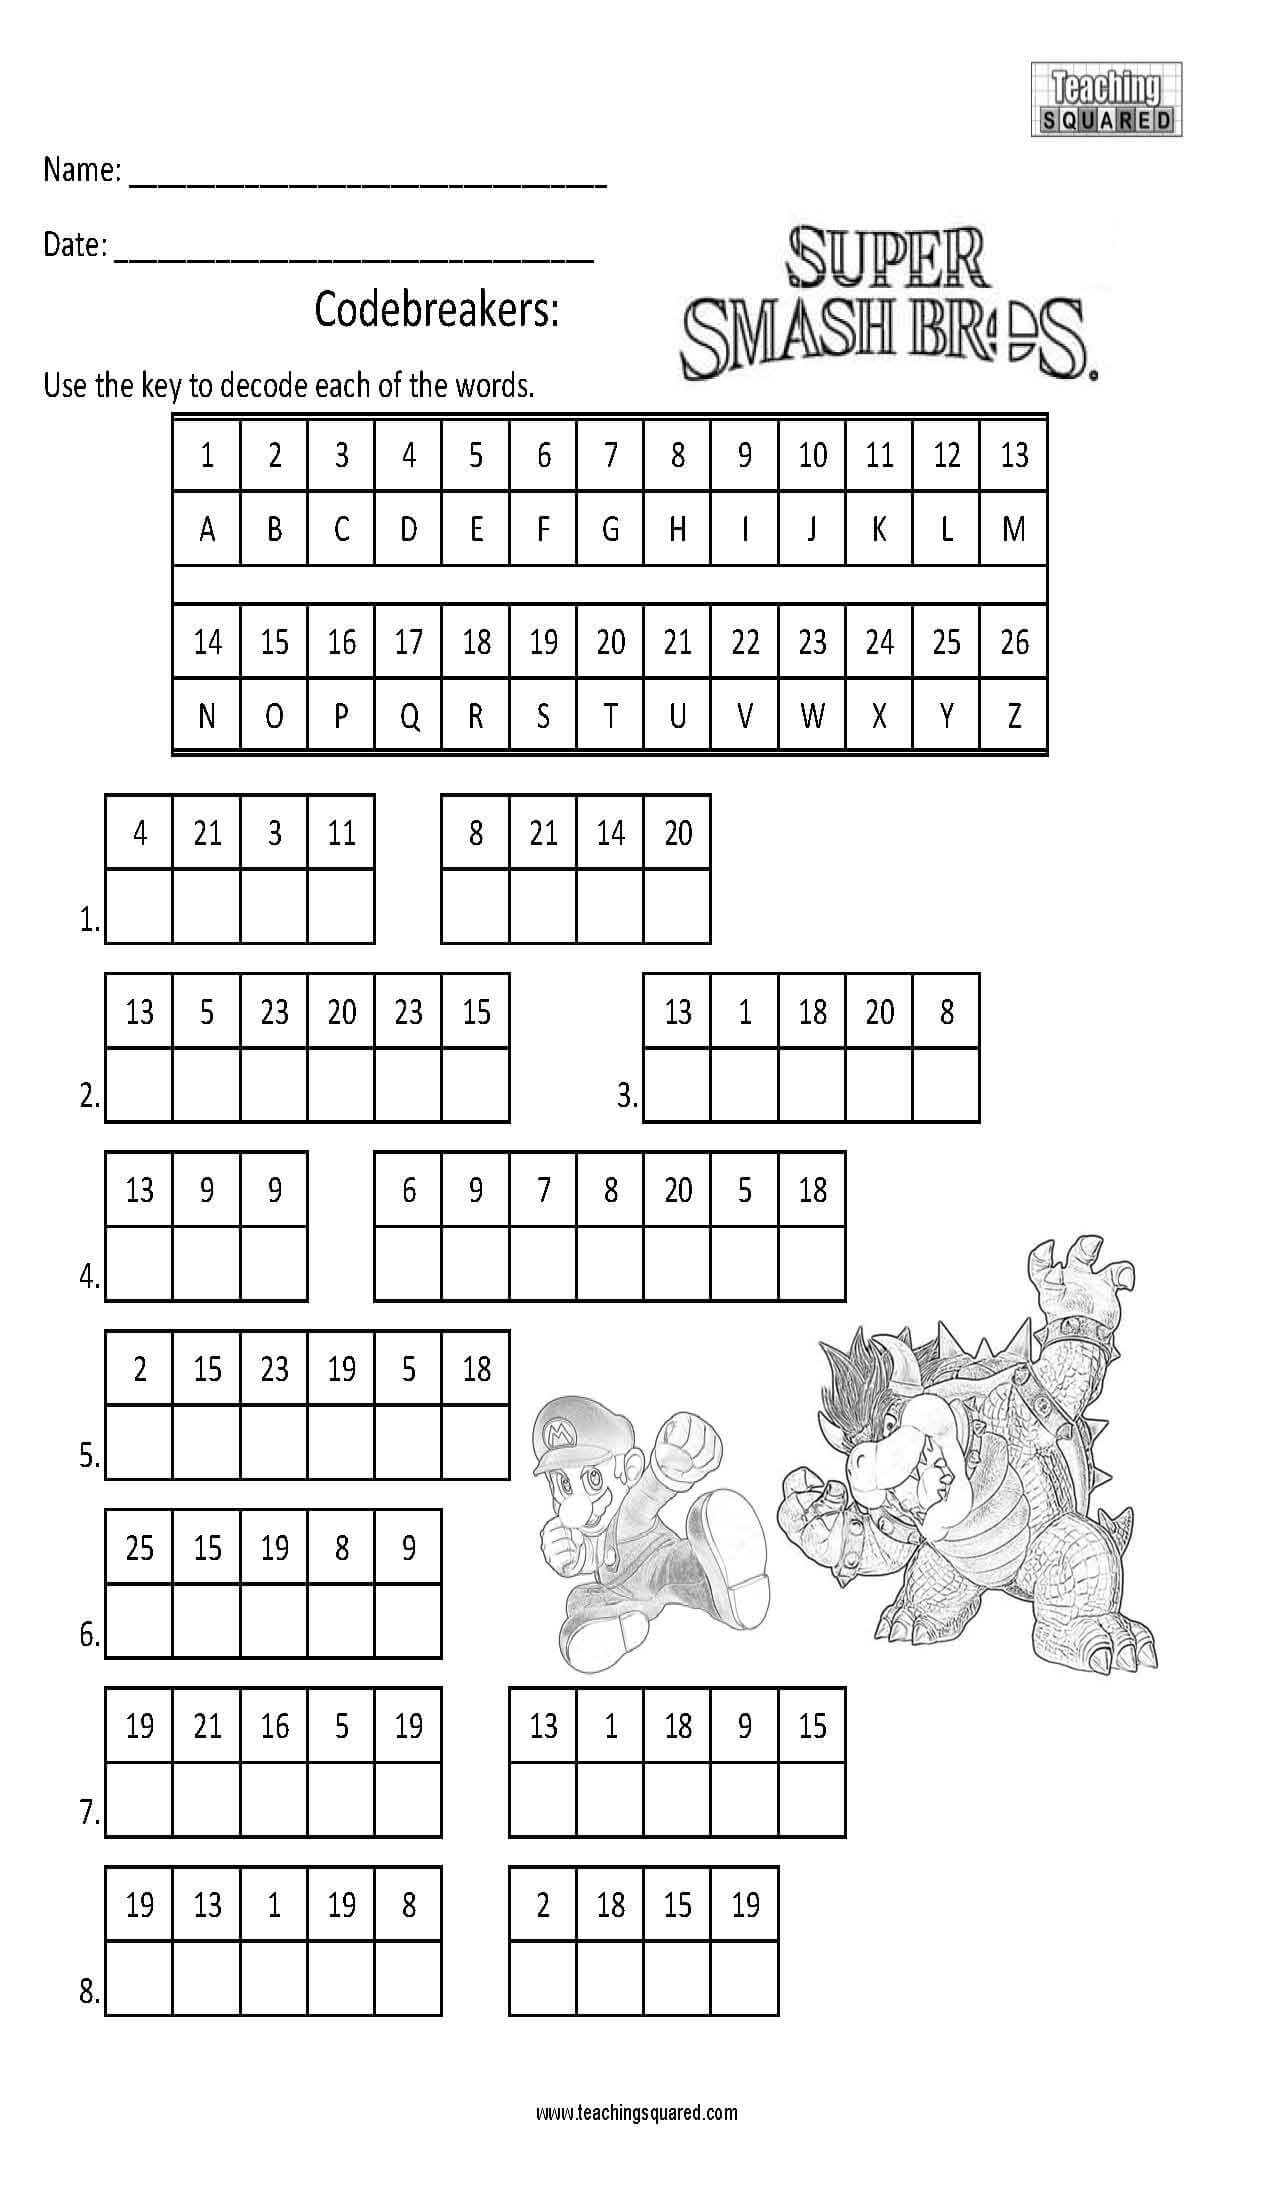 Math Secret Code Worksheets Codebreaker Characters Teaching Squared